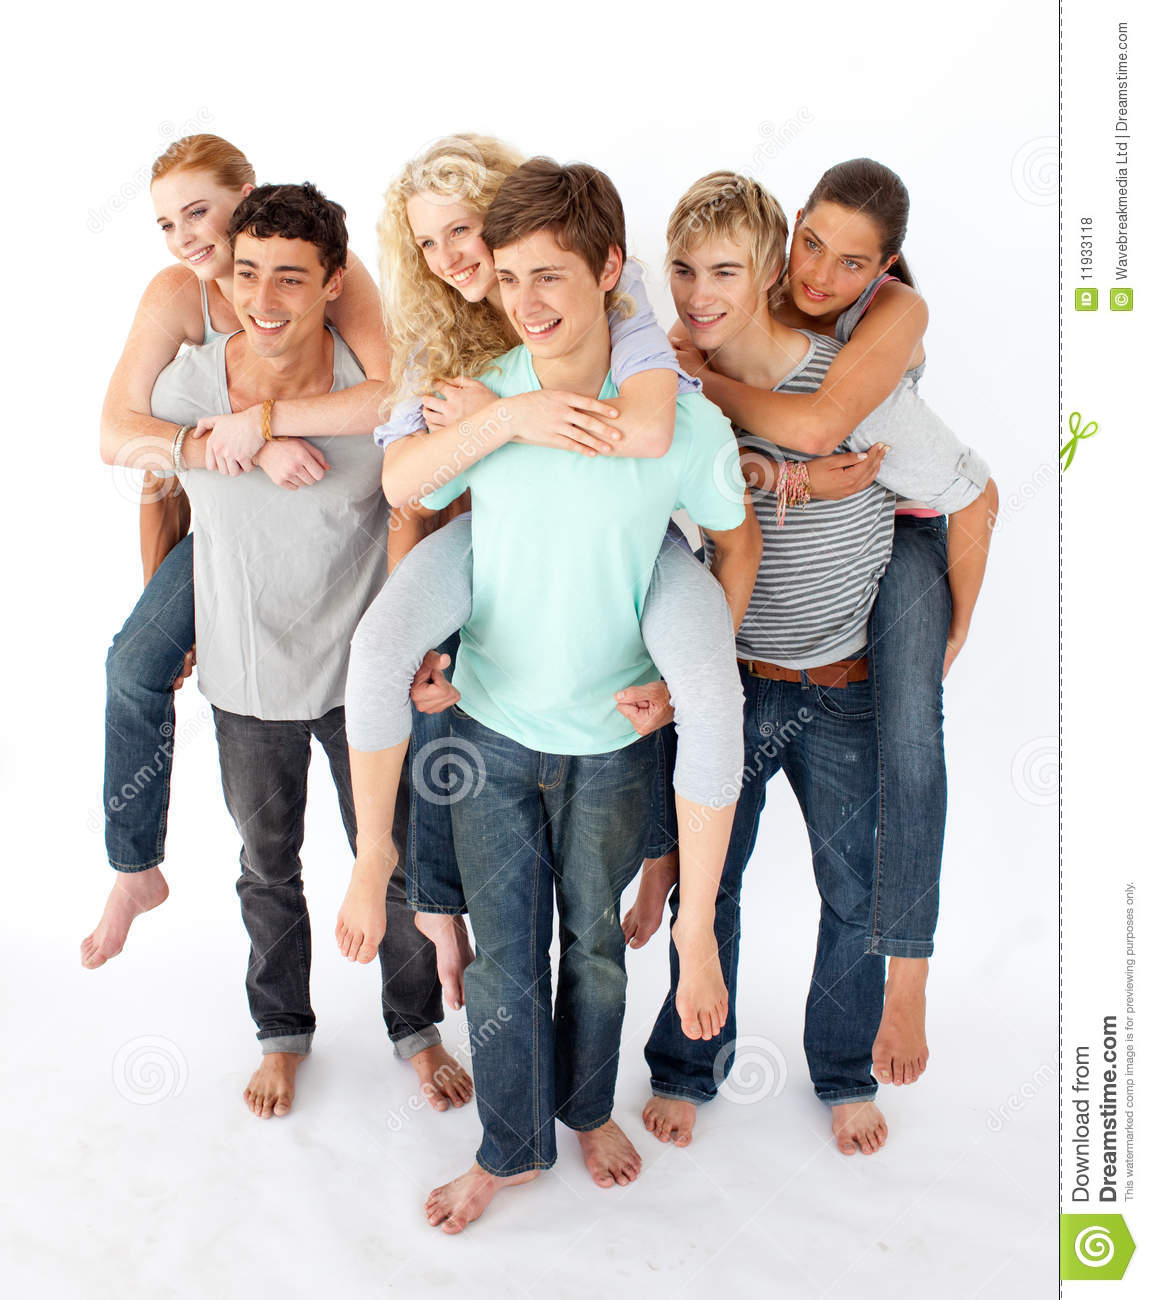 Teenagers Giving Their Friends Piggyback Rides Stock Photo